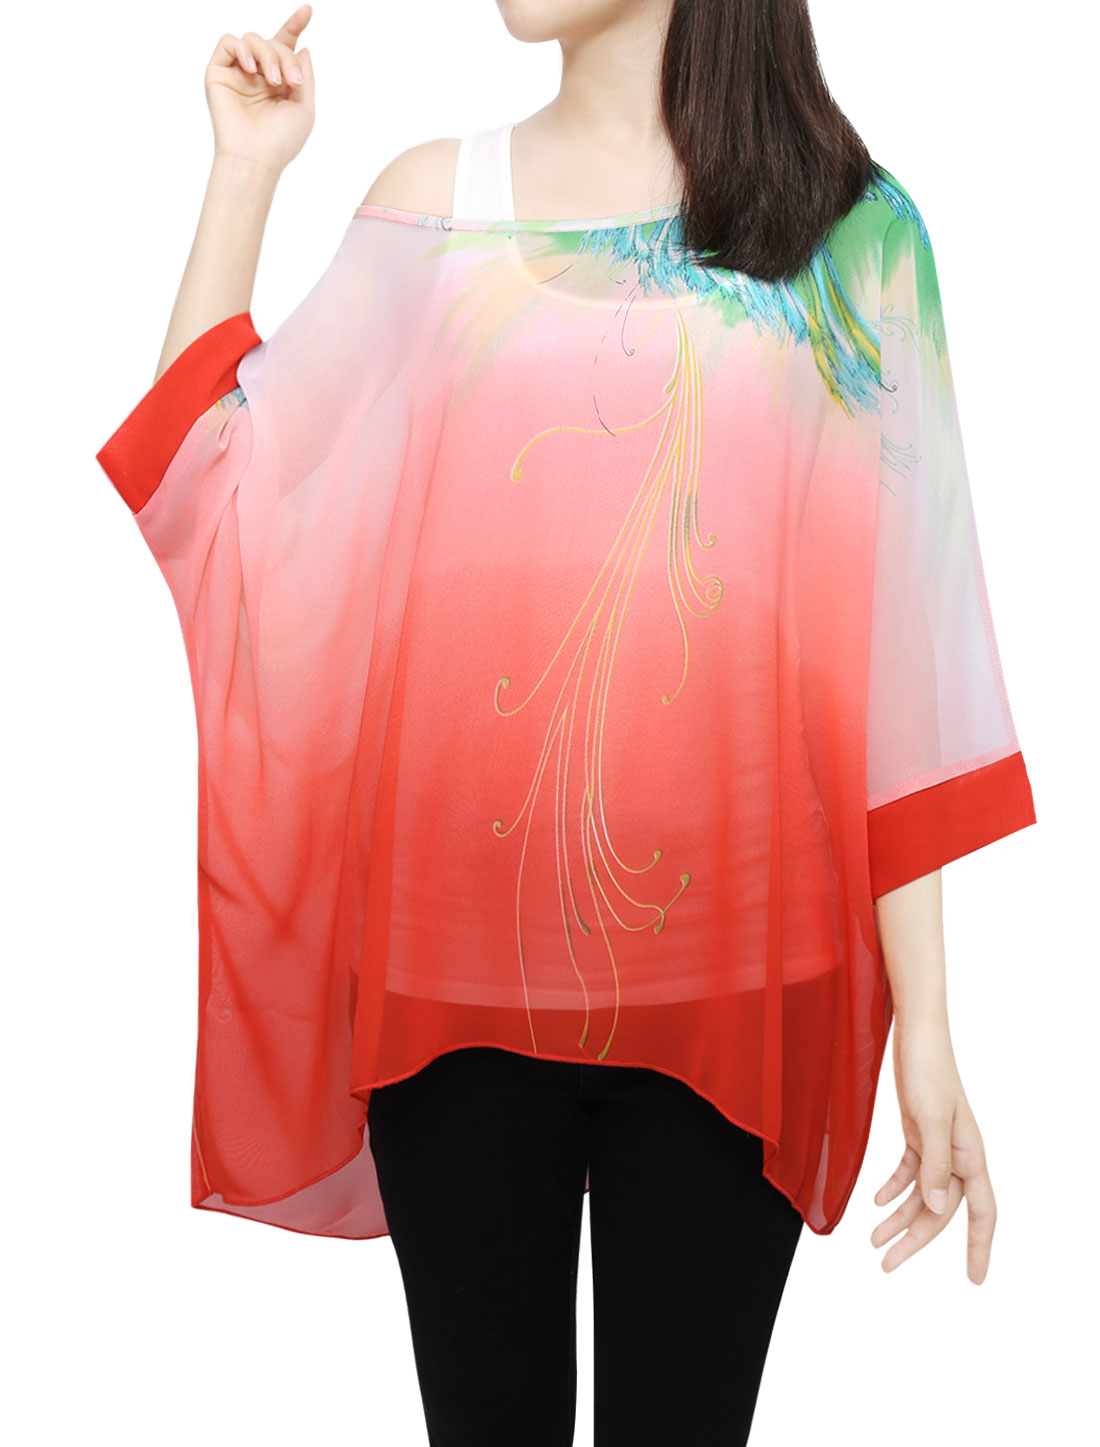 Woman Novelty Prints 3/4 Batwing Sleeve High Low Hem Chiffon Tunic Top Red S